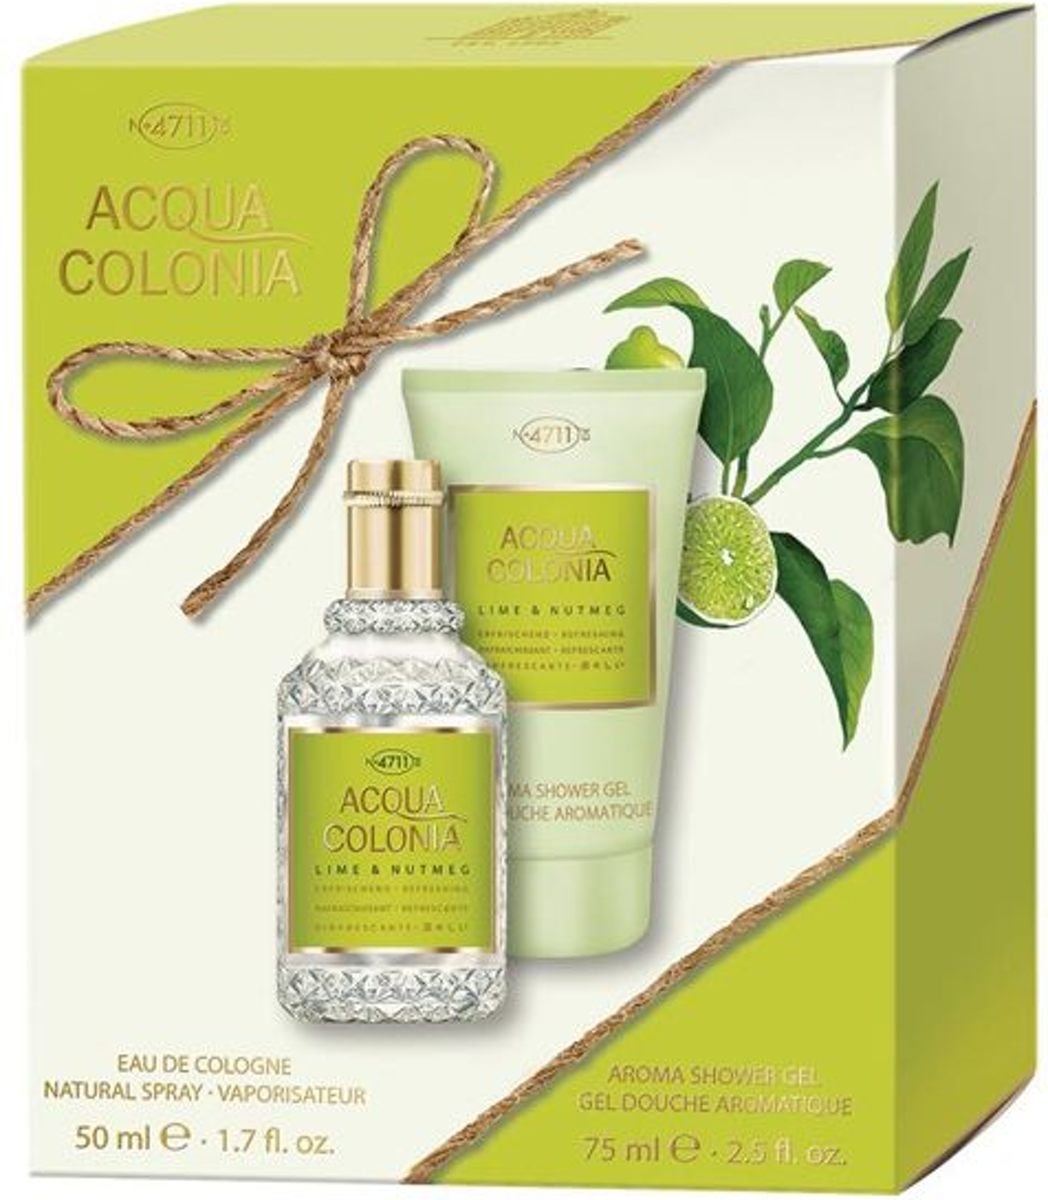 4711 Acqua Colonia Lime & Nutmeg Gift set 2 st.